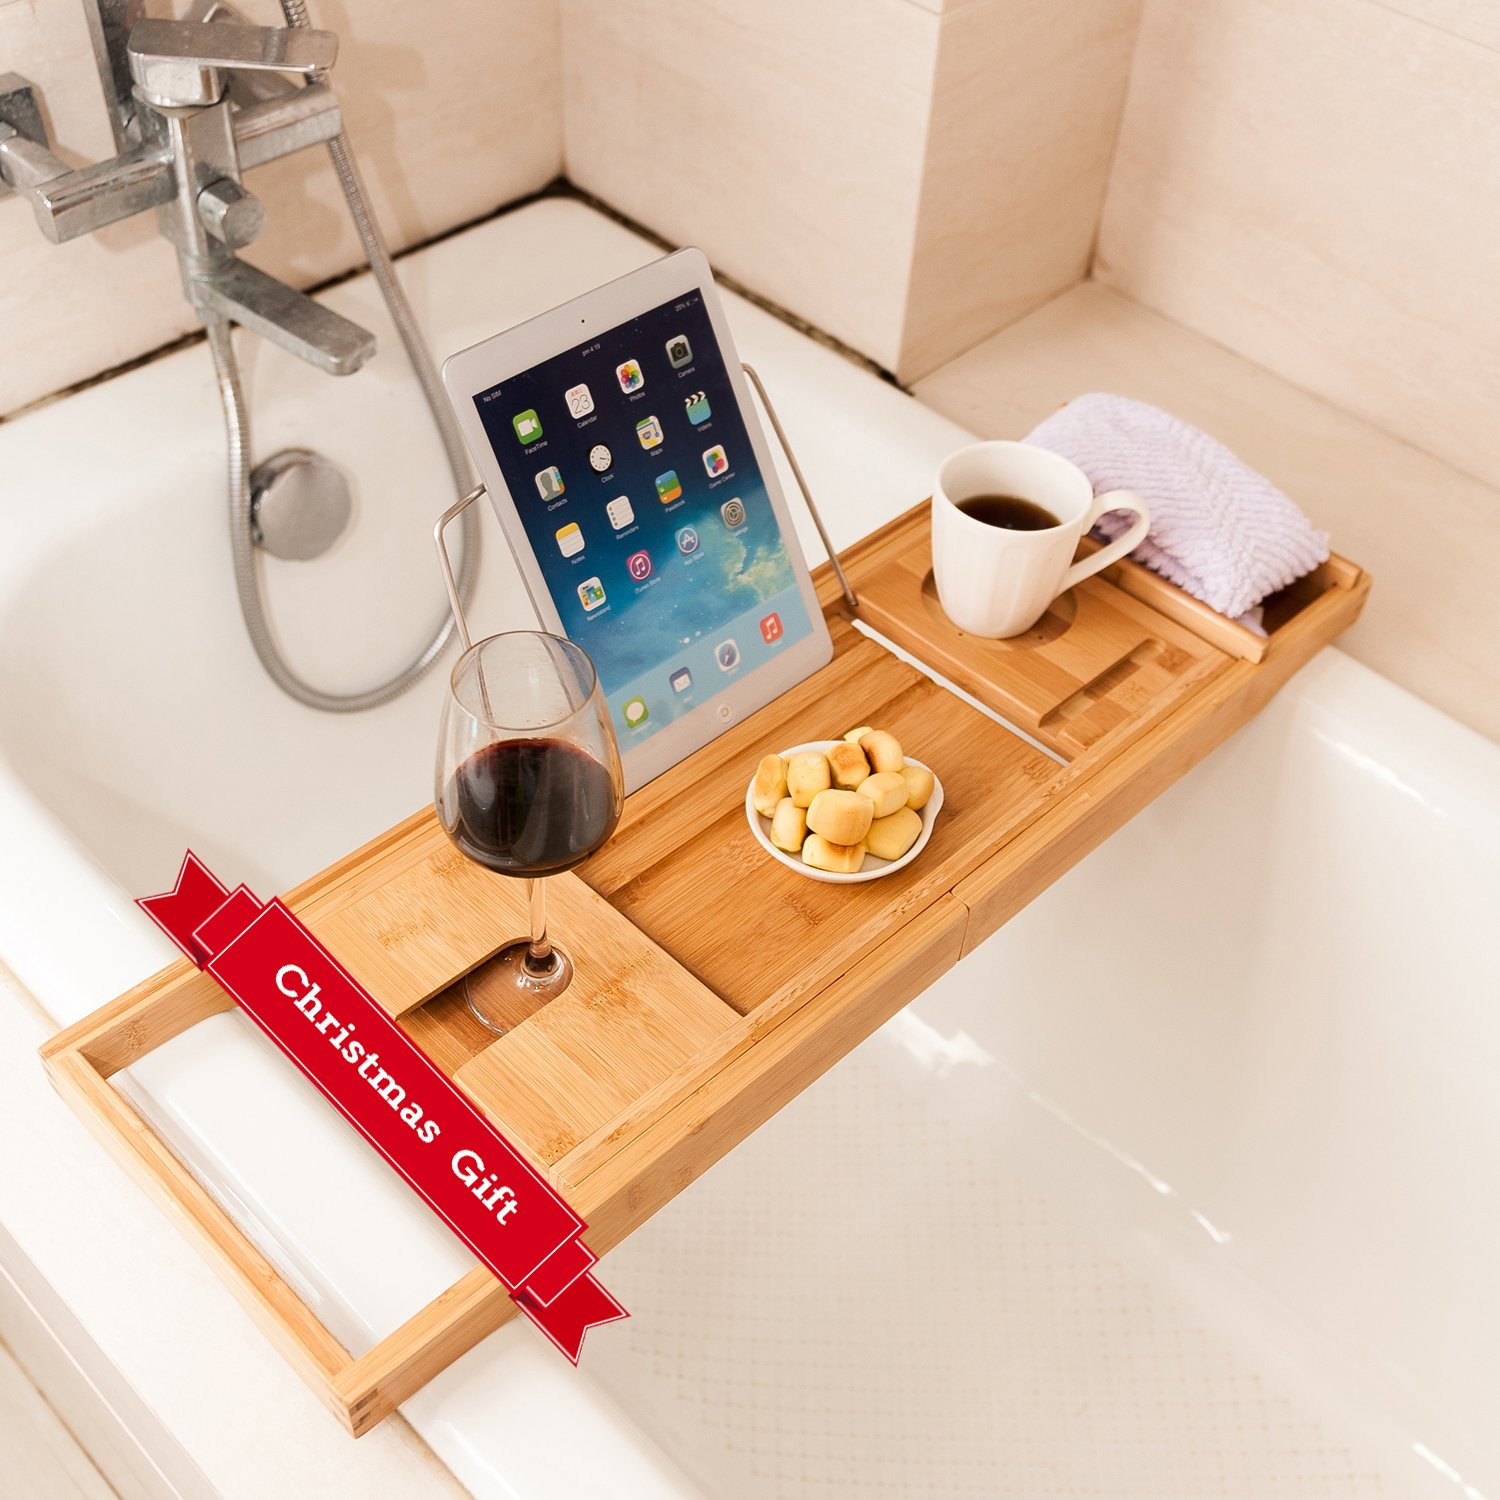 27.6 X 8.7 X 1.9 Mosa Natural Bamboo Bathtub Tray Bath Caddy Book Wine Glass Phone Holder